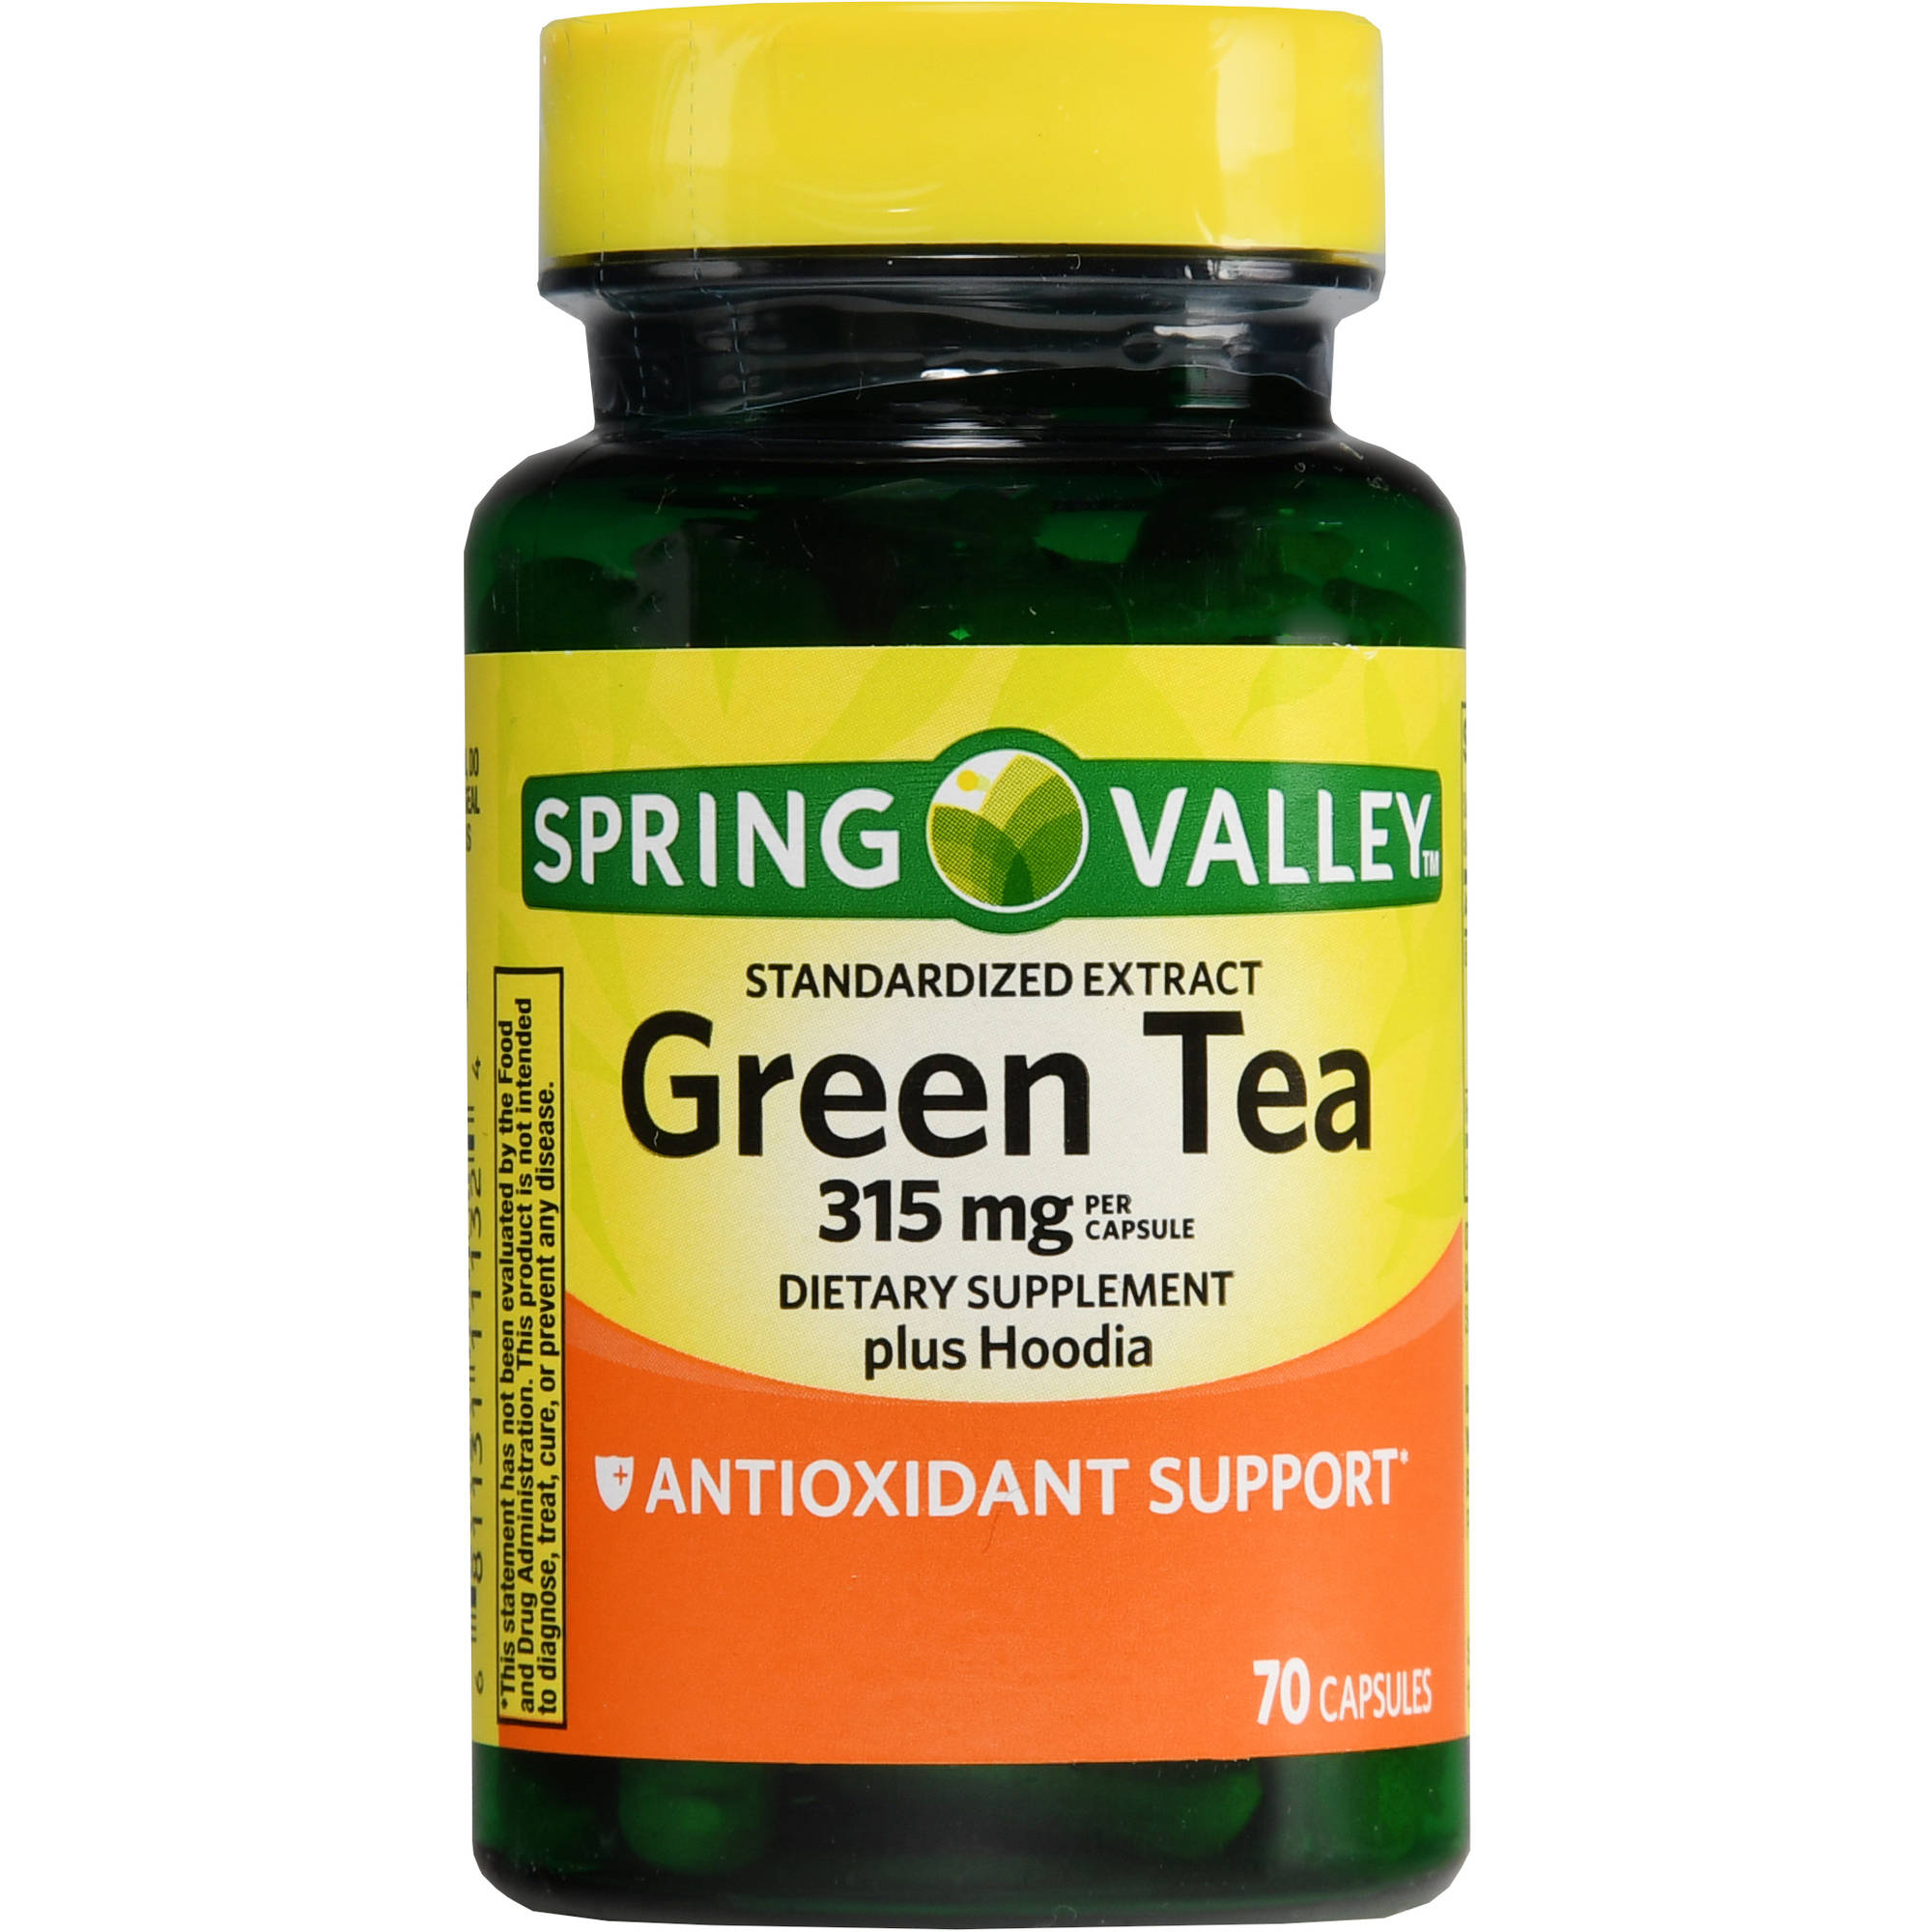 Spring Valley Green Tea plus Hoodia Dietary Supplement Capsules, 315 mg, 70 count